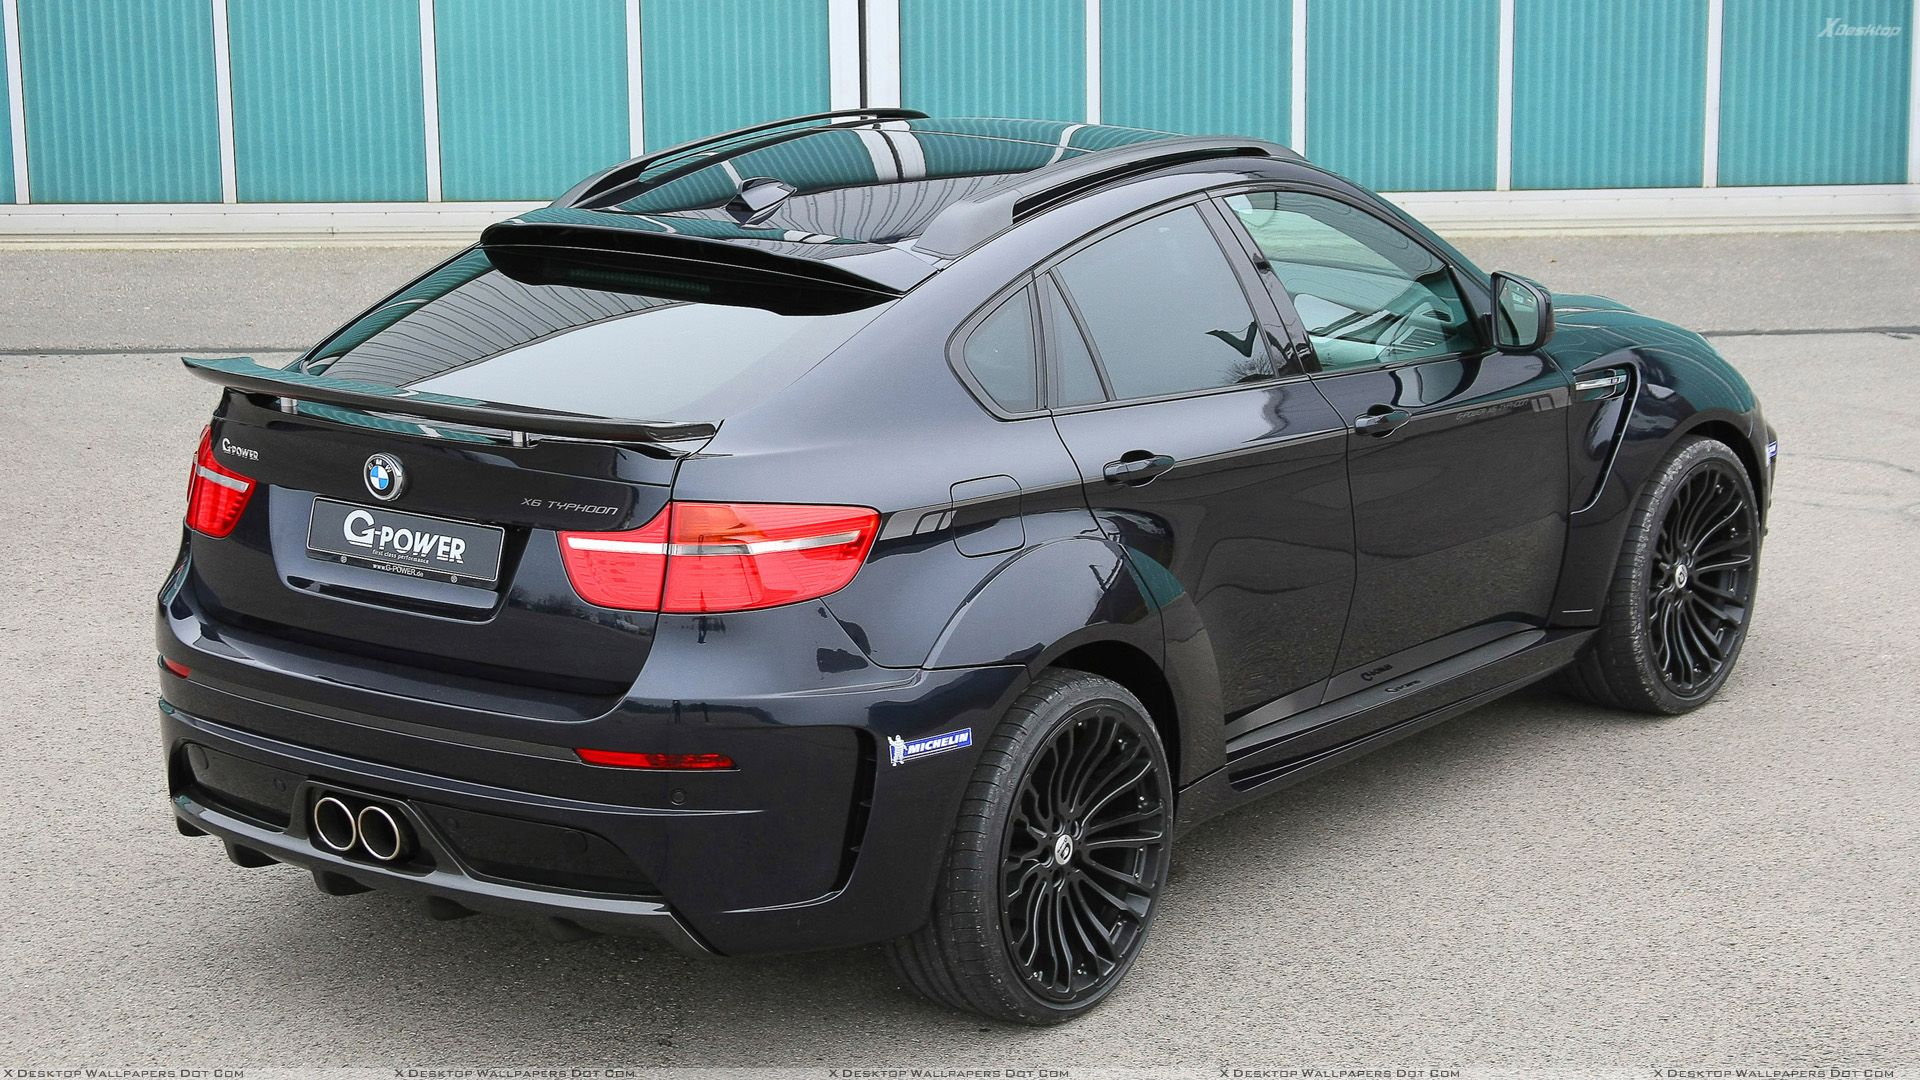 GPower BMW X6 Bmw x6, Bmw, Car